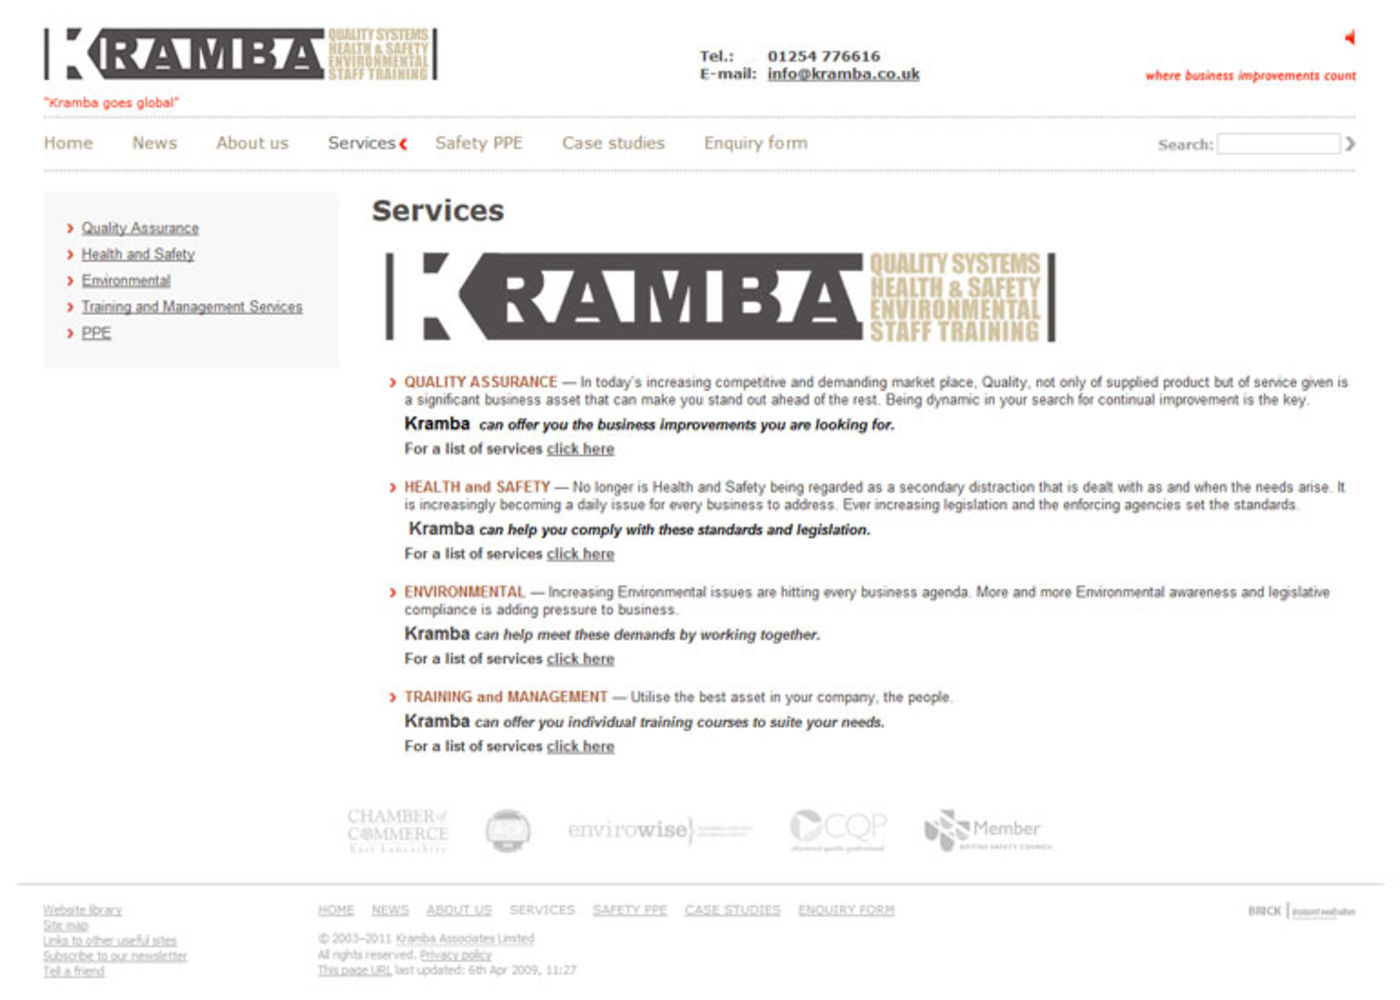 Kramba Associates Limited Services - Kramba